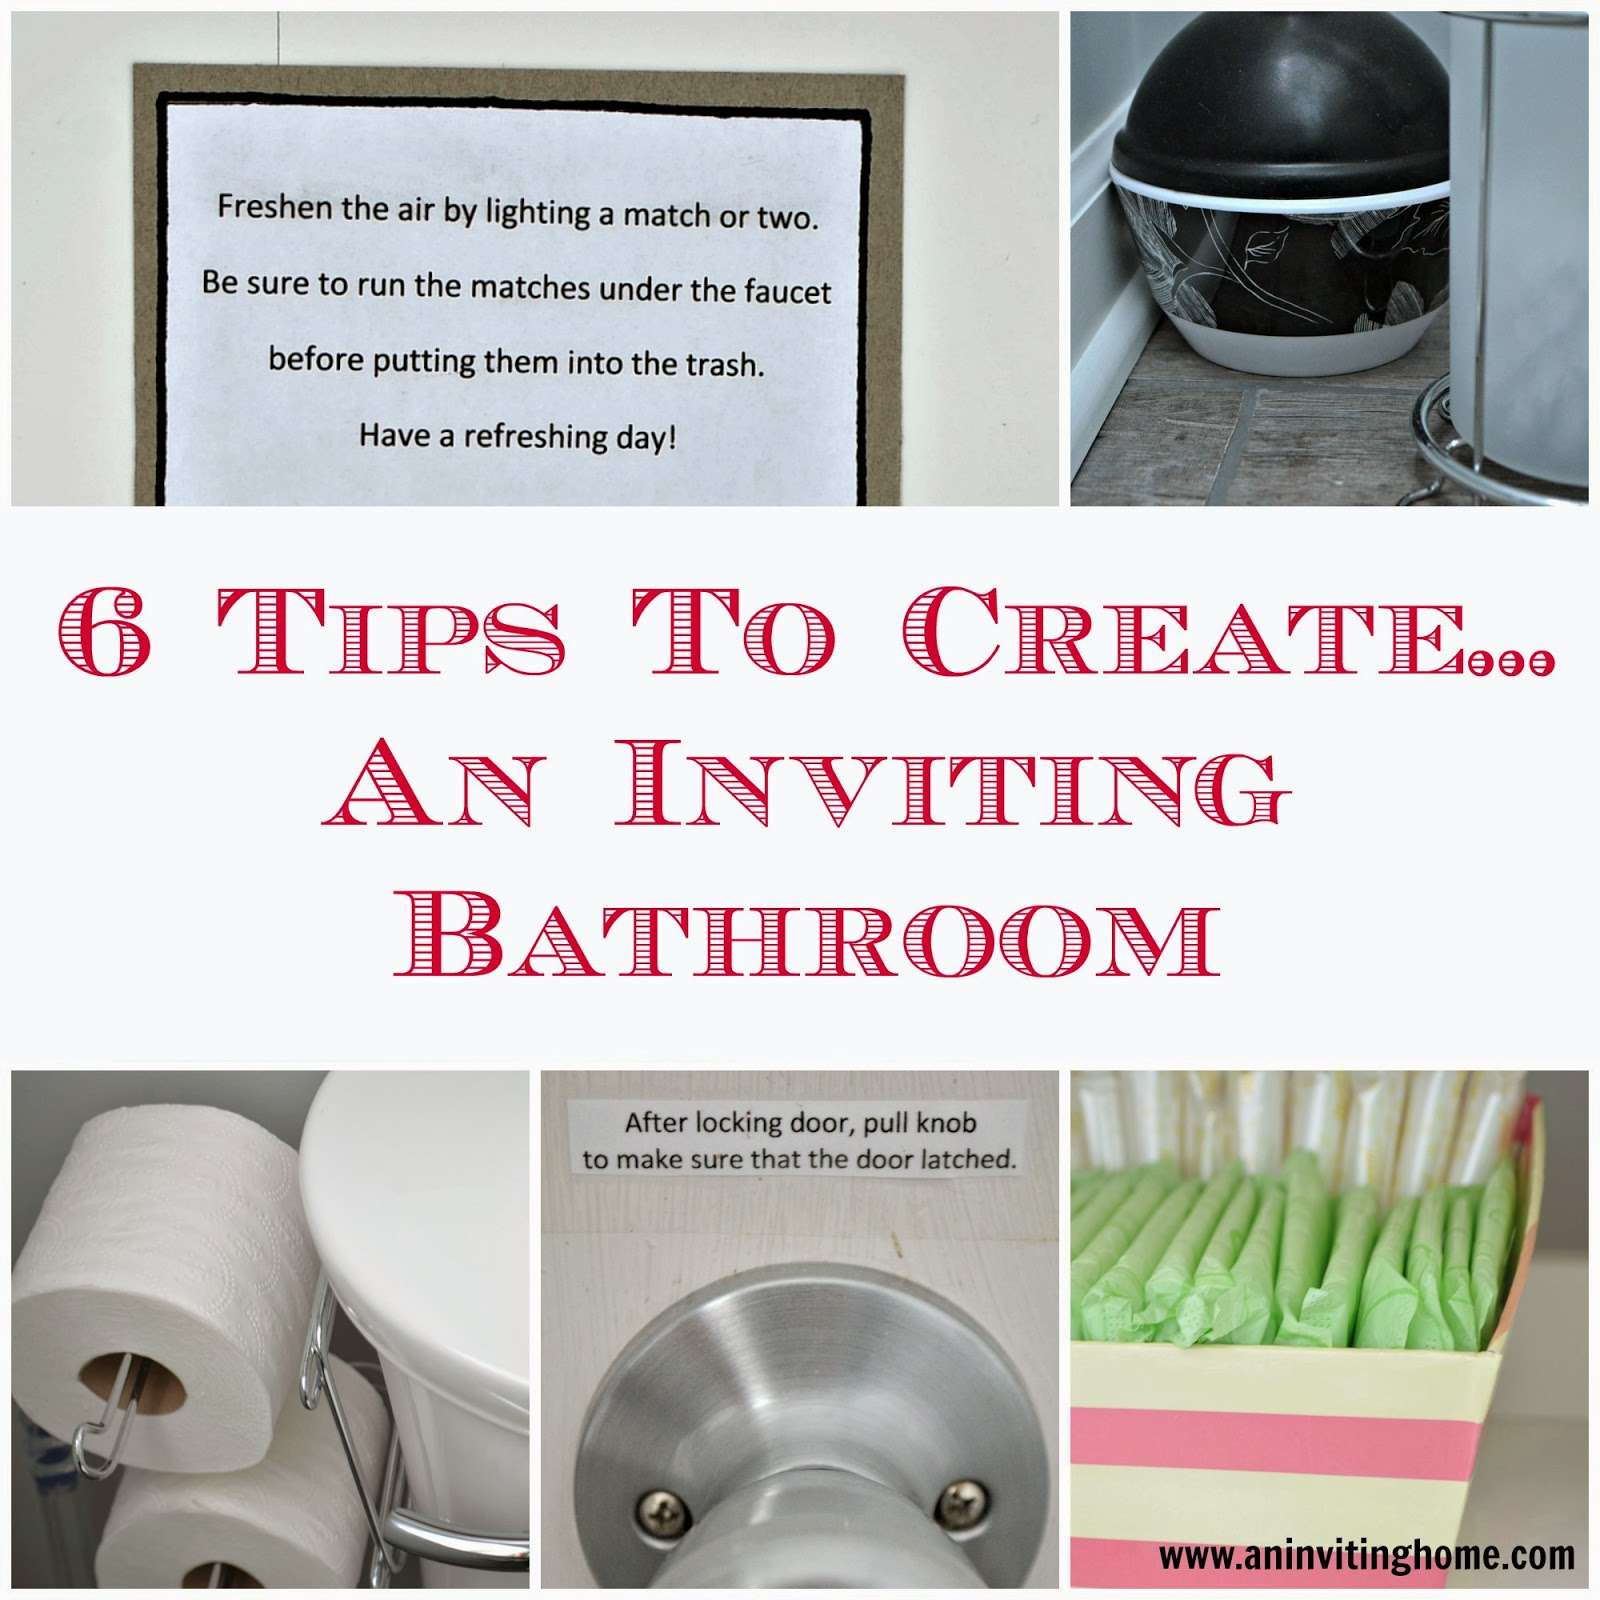 6 tips to creating an inviting bathroom for guests